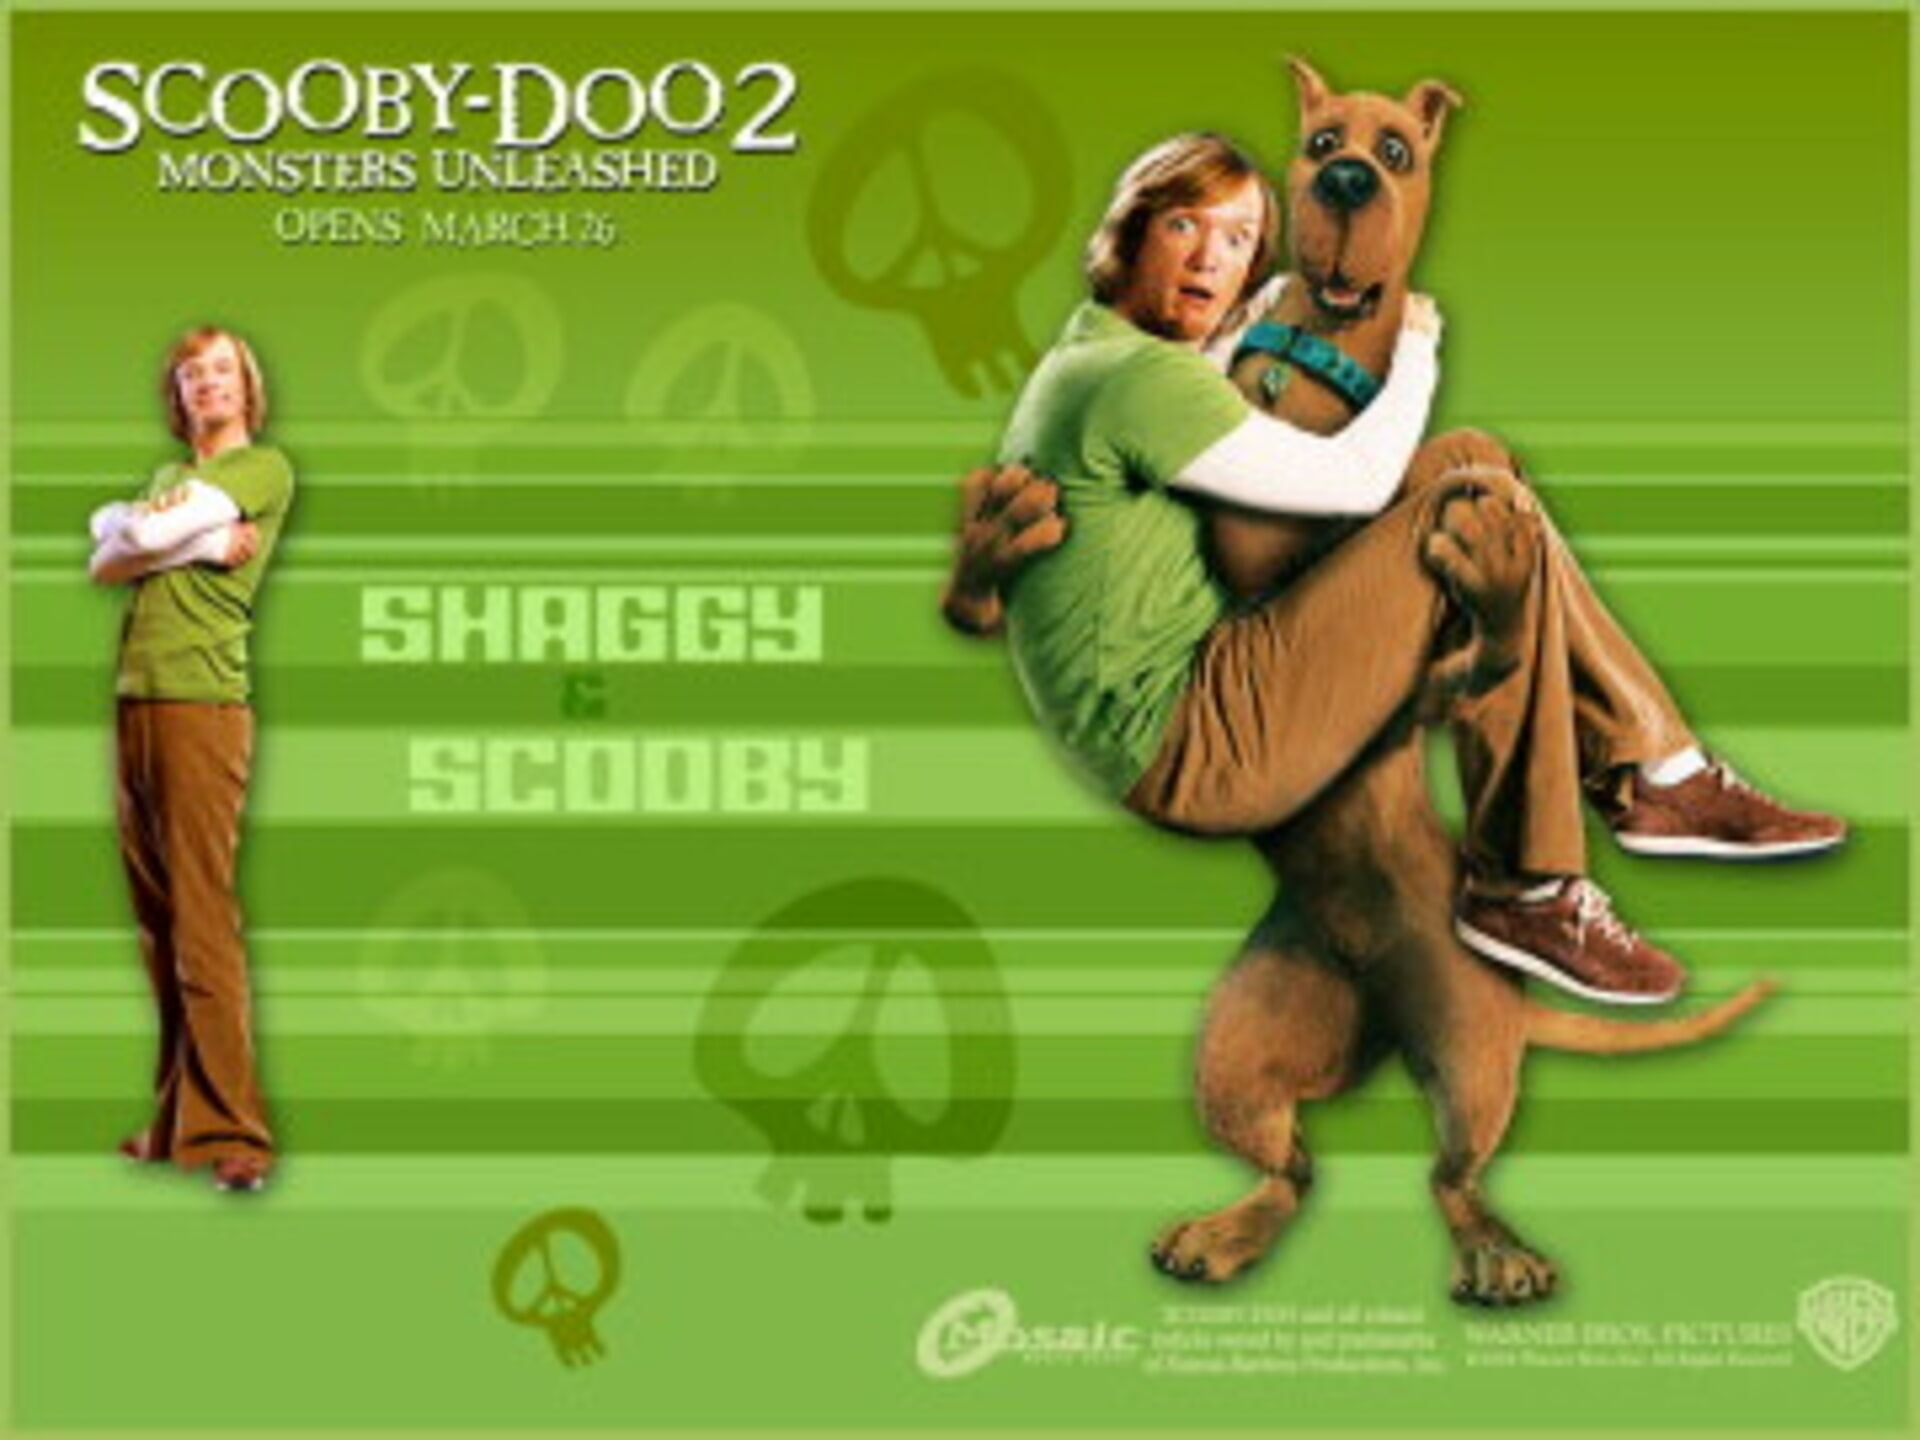 Scooby-doo 2: Monsters Unleashed - Image 14